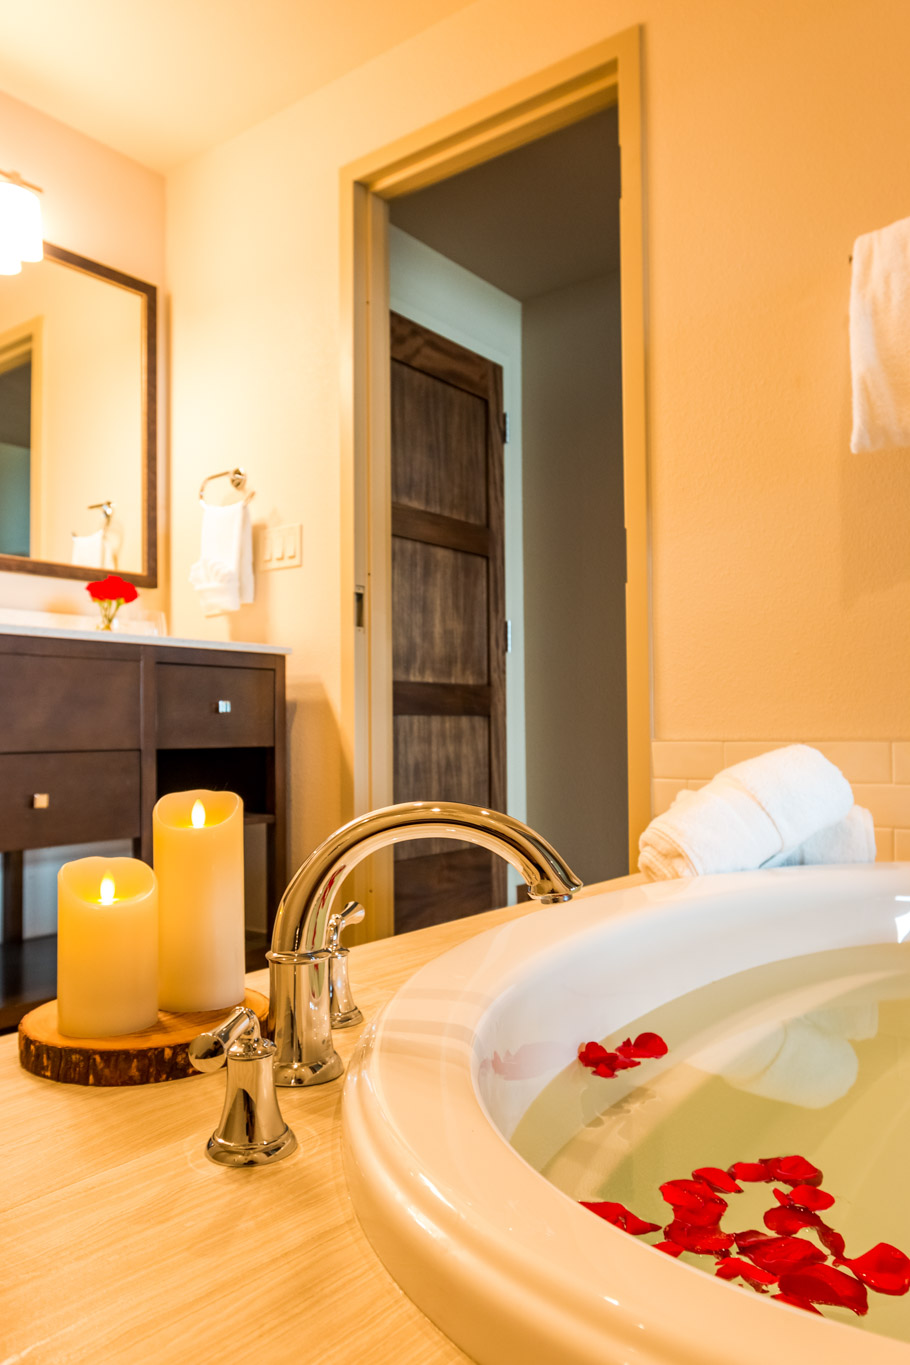 Take a moment to relax in our spa inspired tub